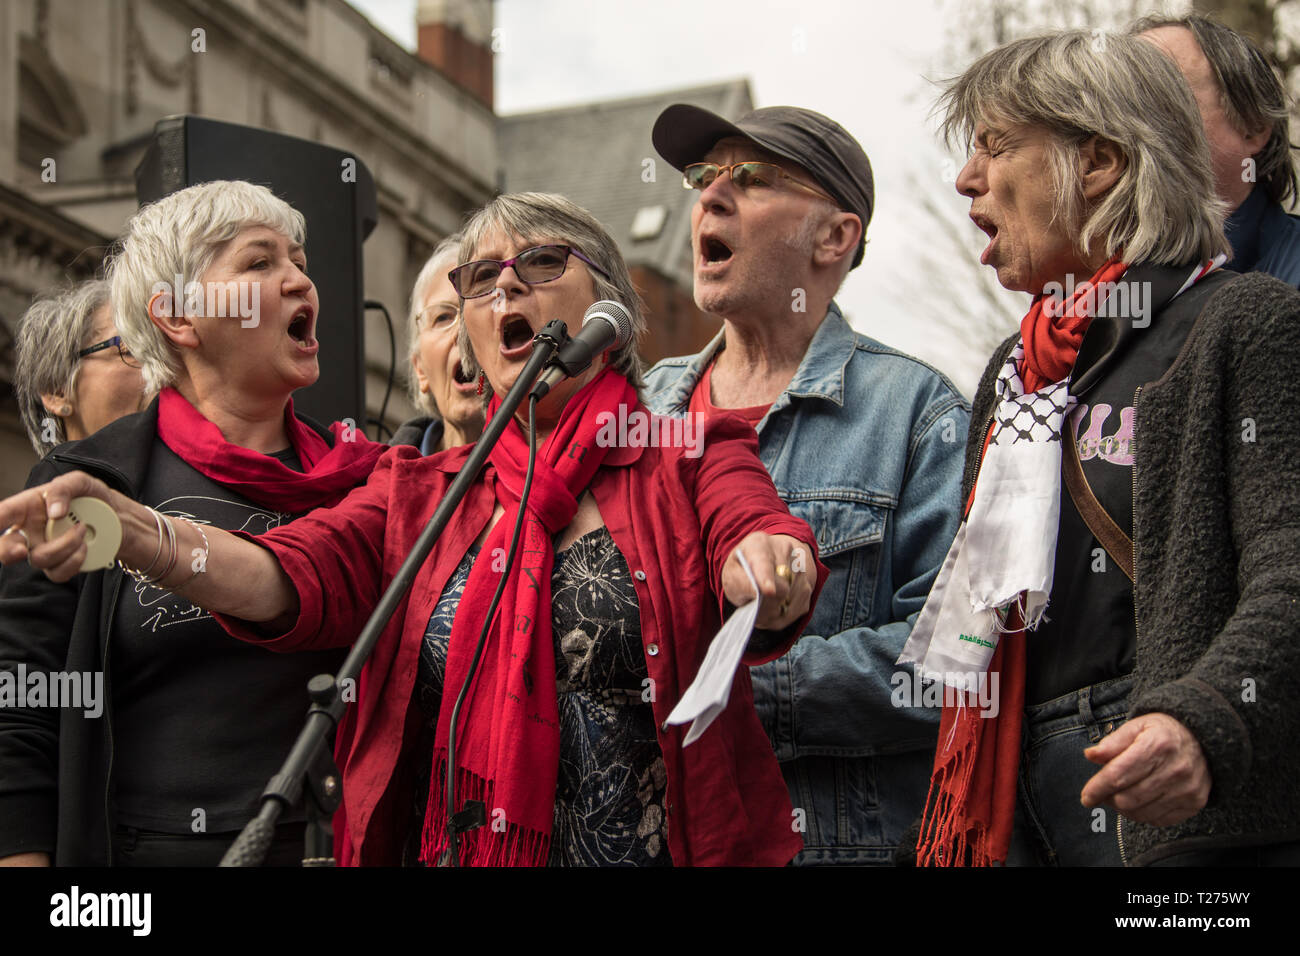 London, UK. 30 March, 2019. Palestinians and supporters gathered outside of the Israeli Embassy in London to mark the beginning of Nakba and to call on the global community to hold Israel to account for their violation of human rights and International law. David Rowe/ Alamy Live News. - Stock Image